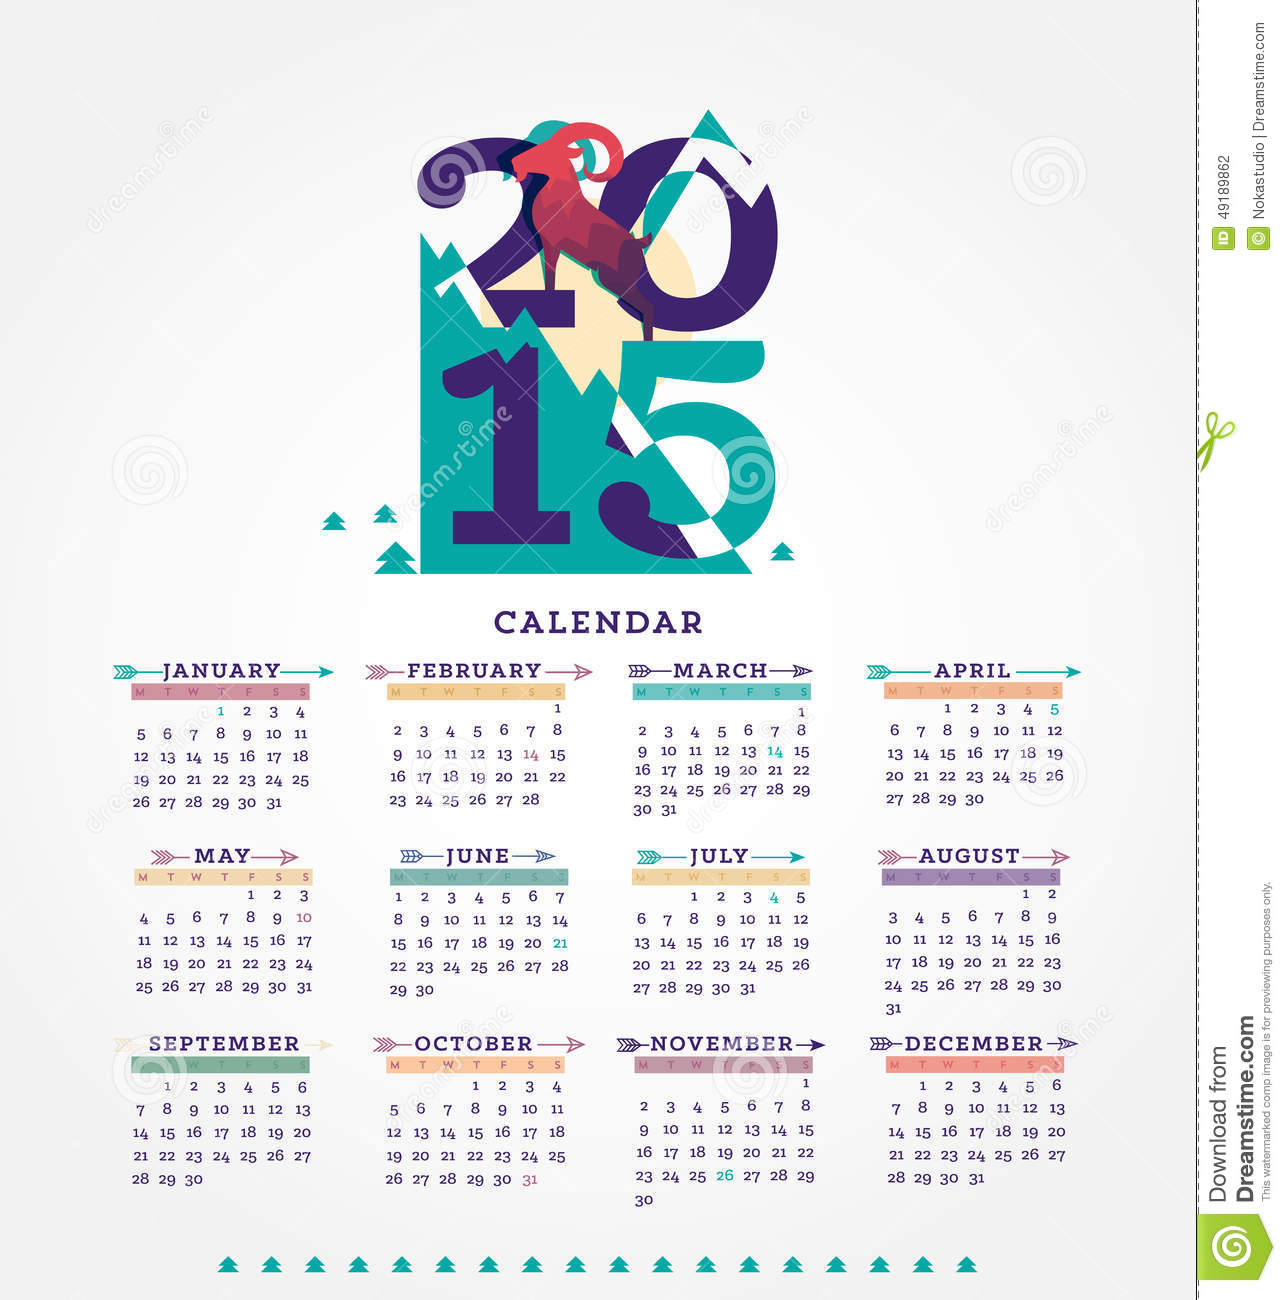 Calendar For Typography Nerds : Calendar stock illustration image